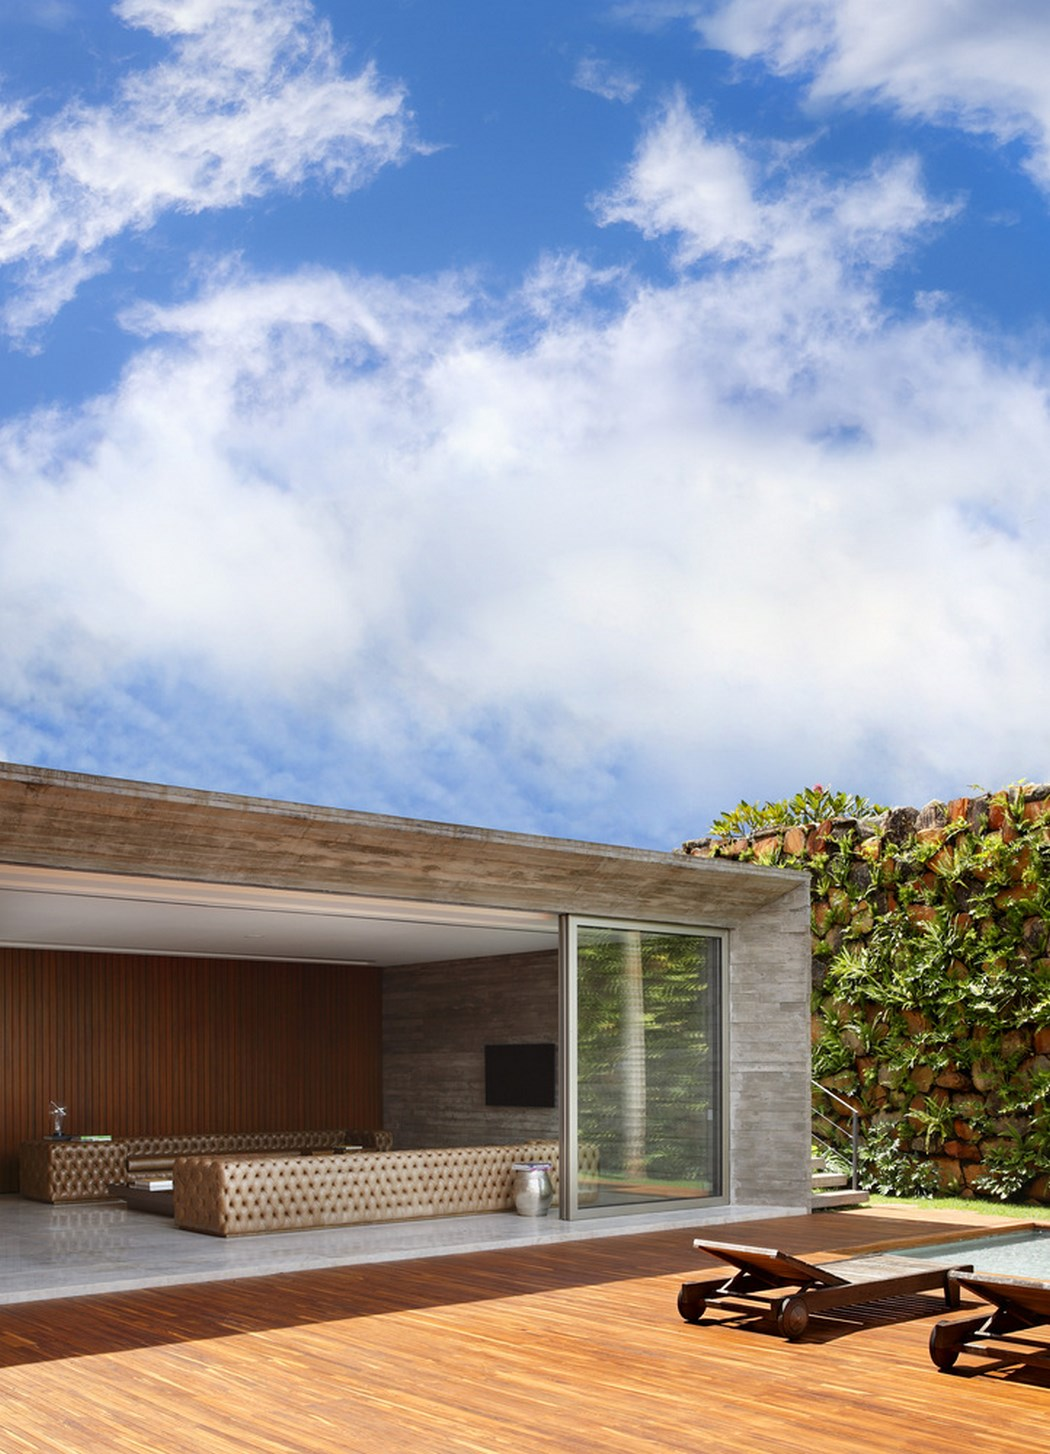 AN-house-architect-guilherme-torres-4